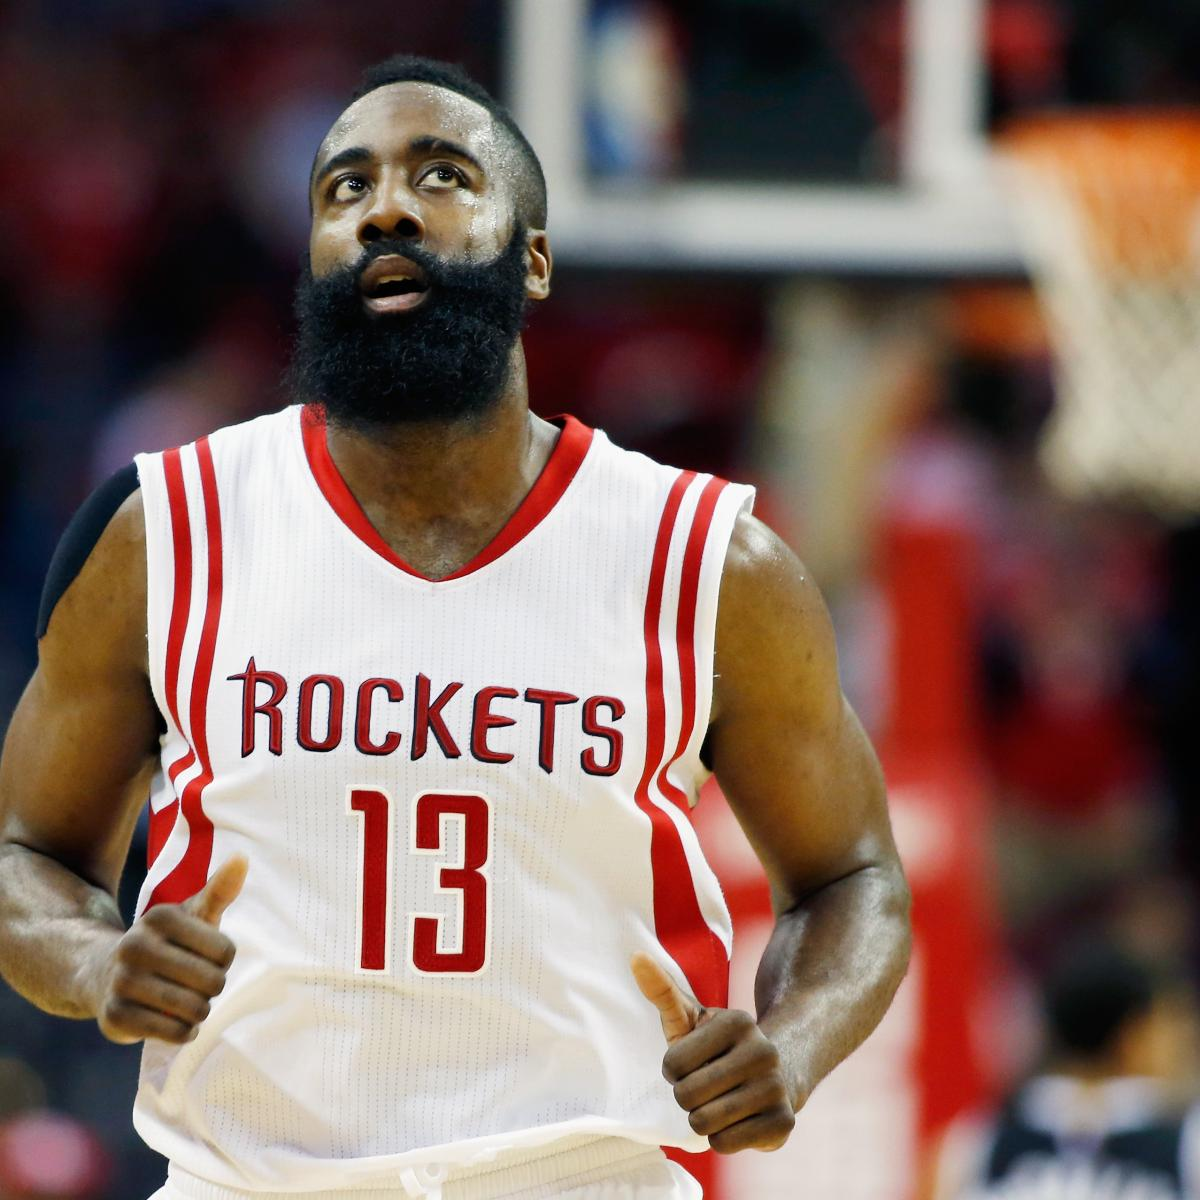 James Harden And Stephen Curry: Why James Harden, Not Stephen Curry Is This Year's NBA MVP